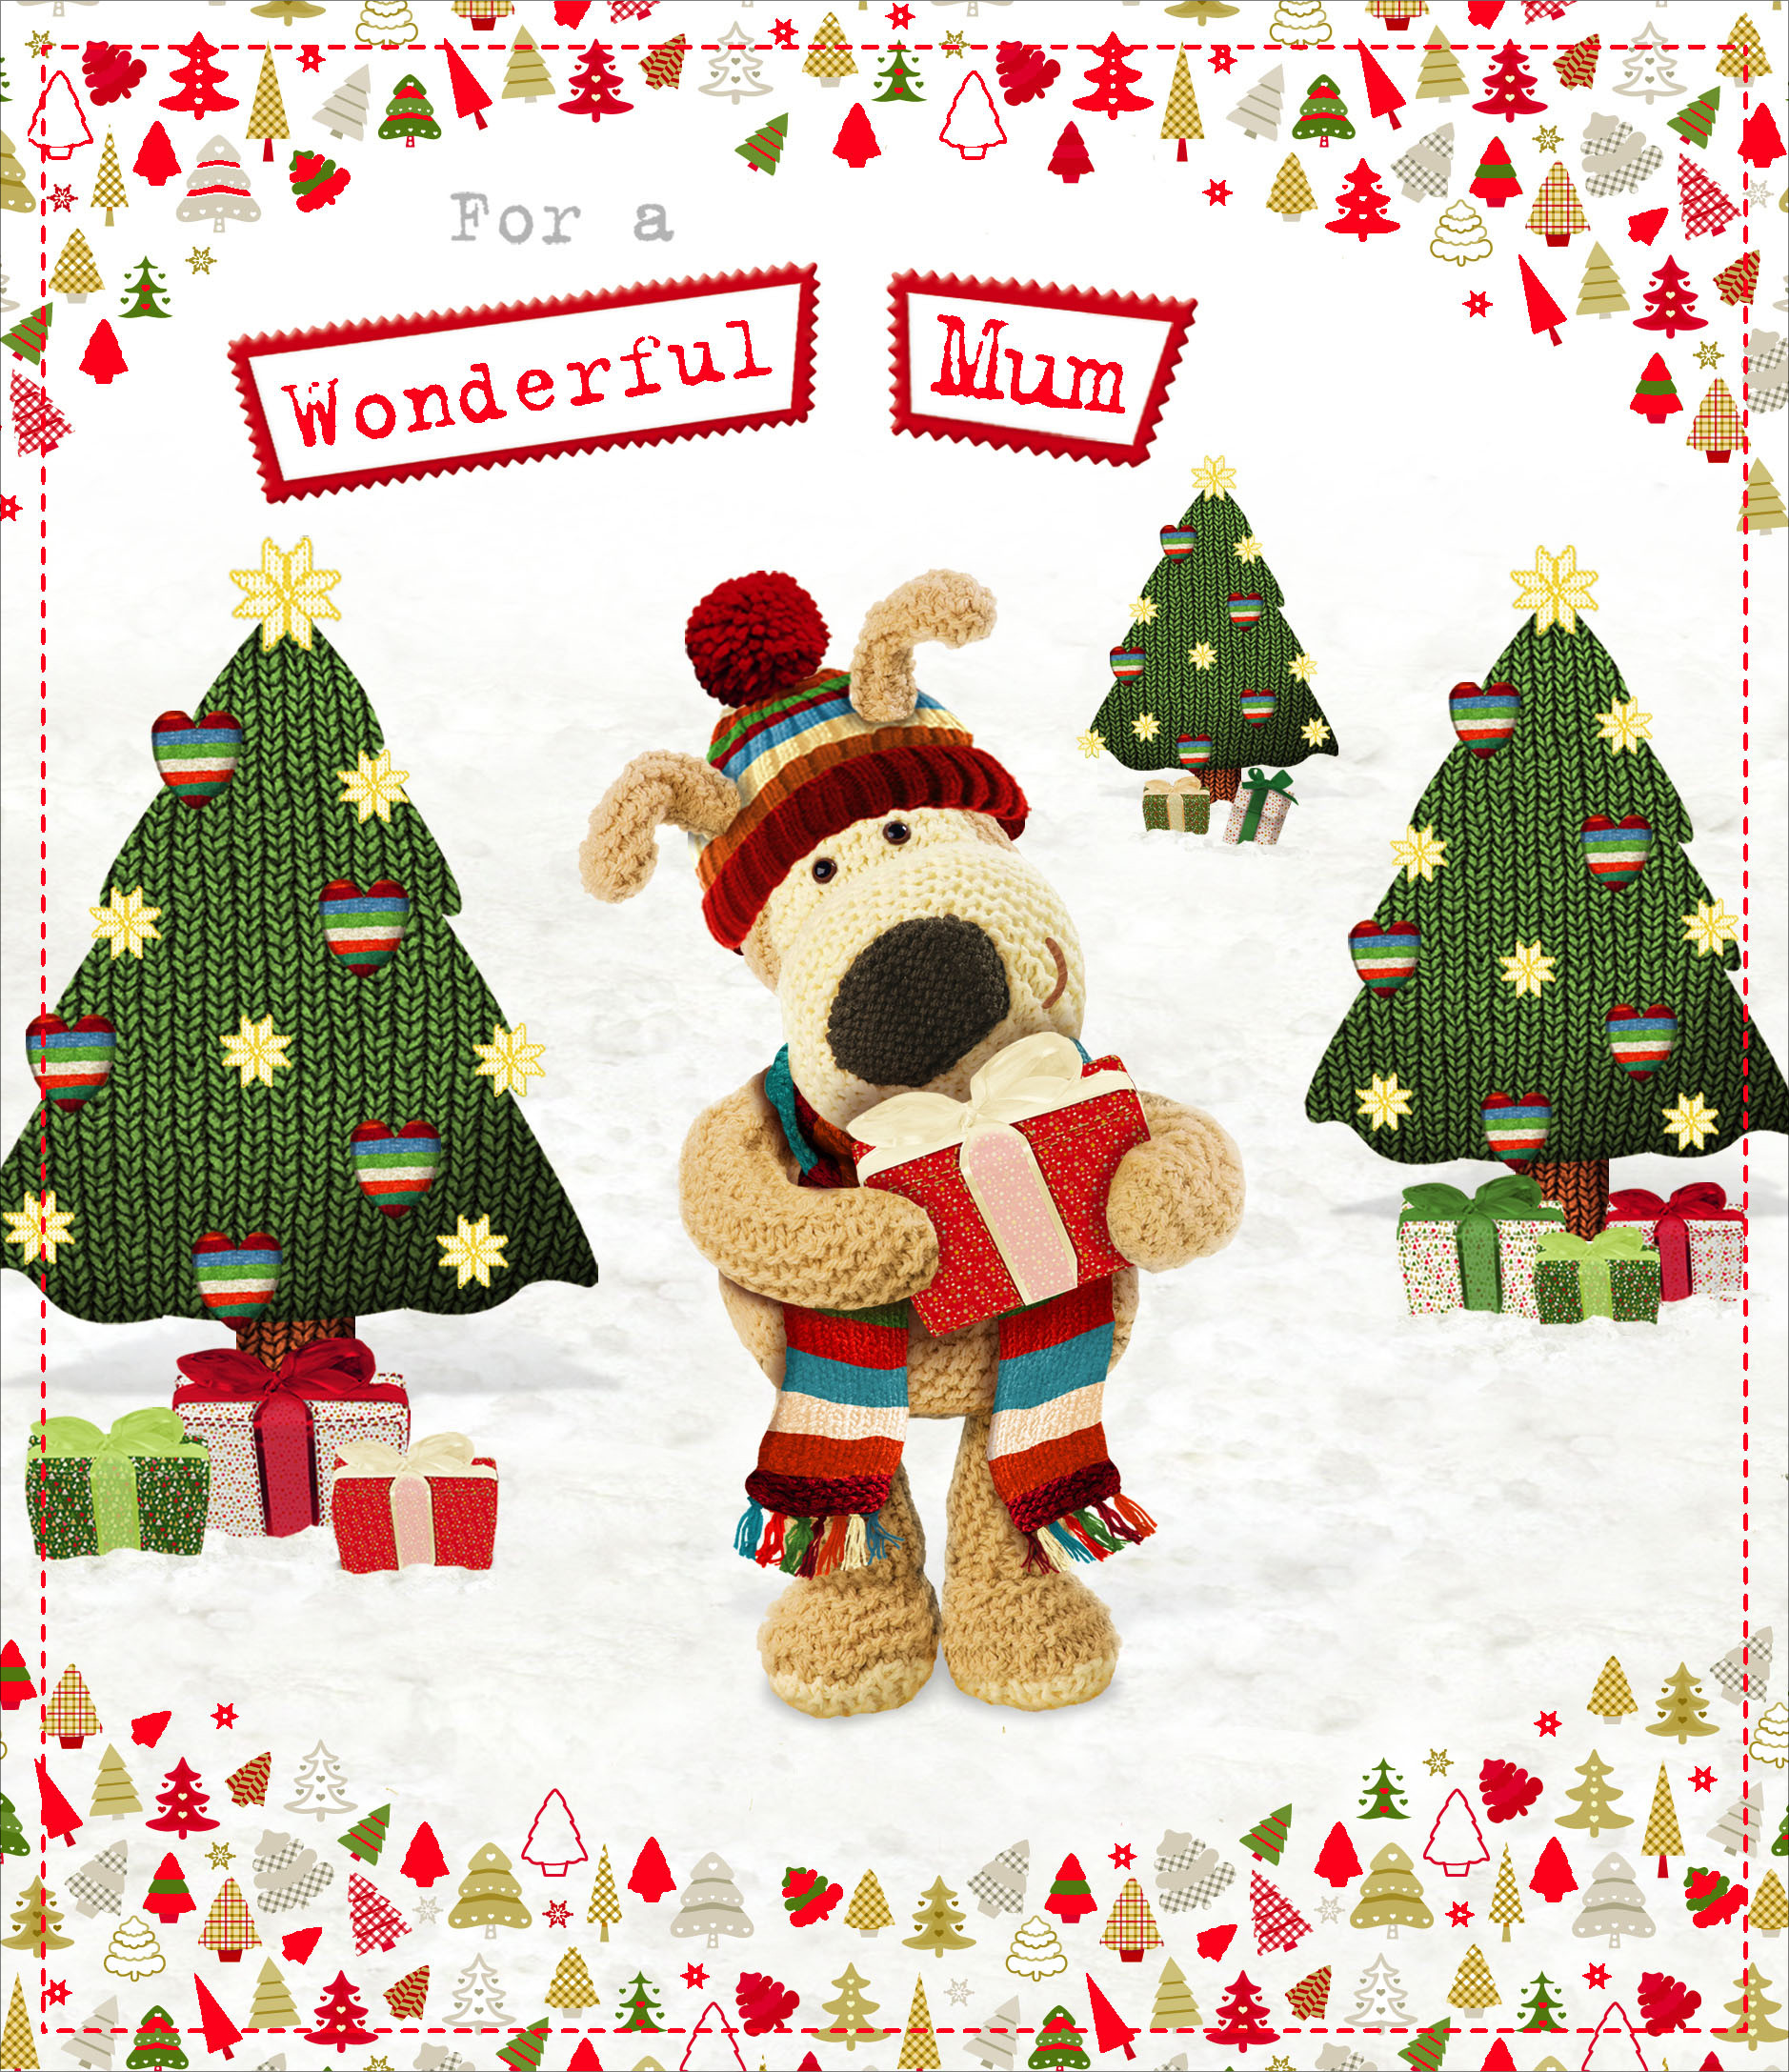 Christmas Greeting Card Images.Boofle Wonderful Mum Christmas Greeting Card